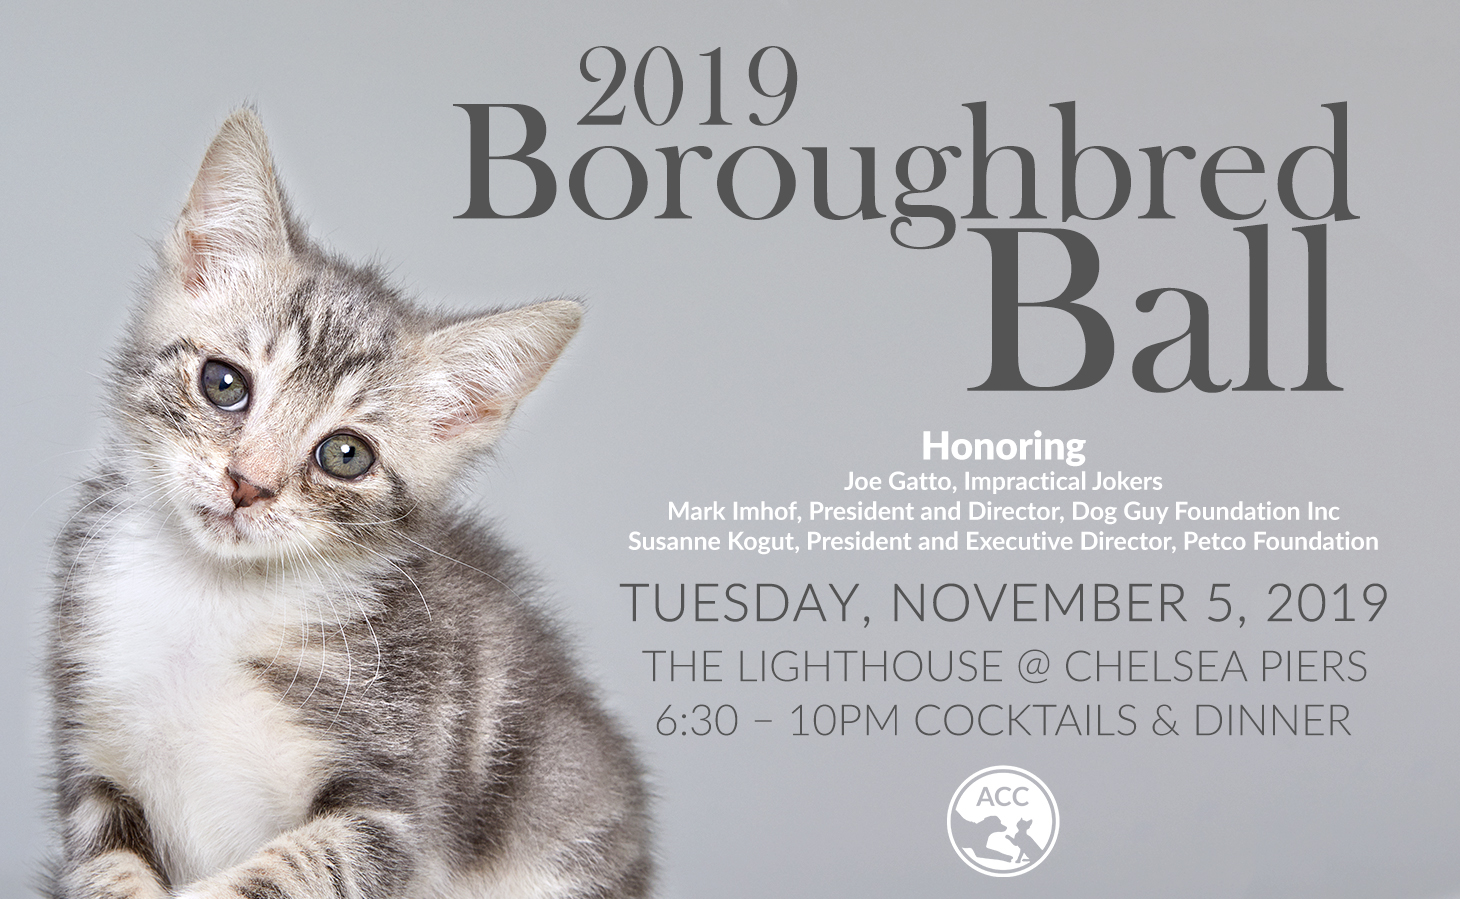 Boroughbred Ball Save the Date 2019 v3.jpg